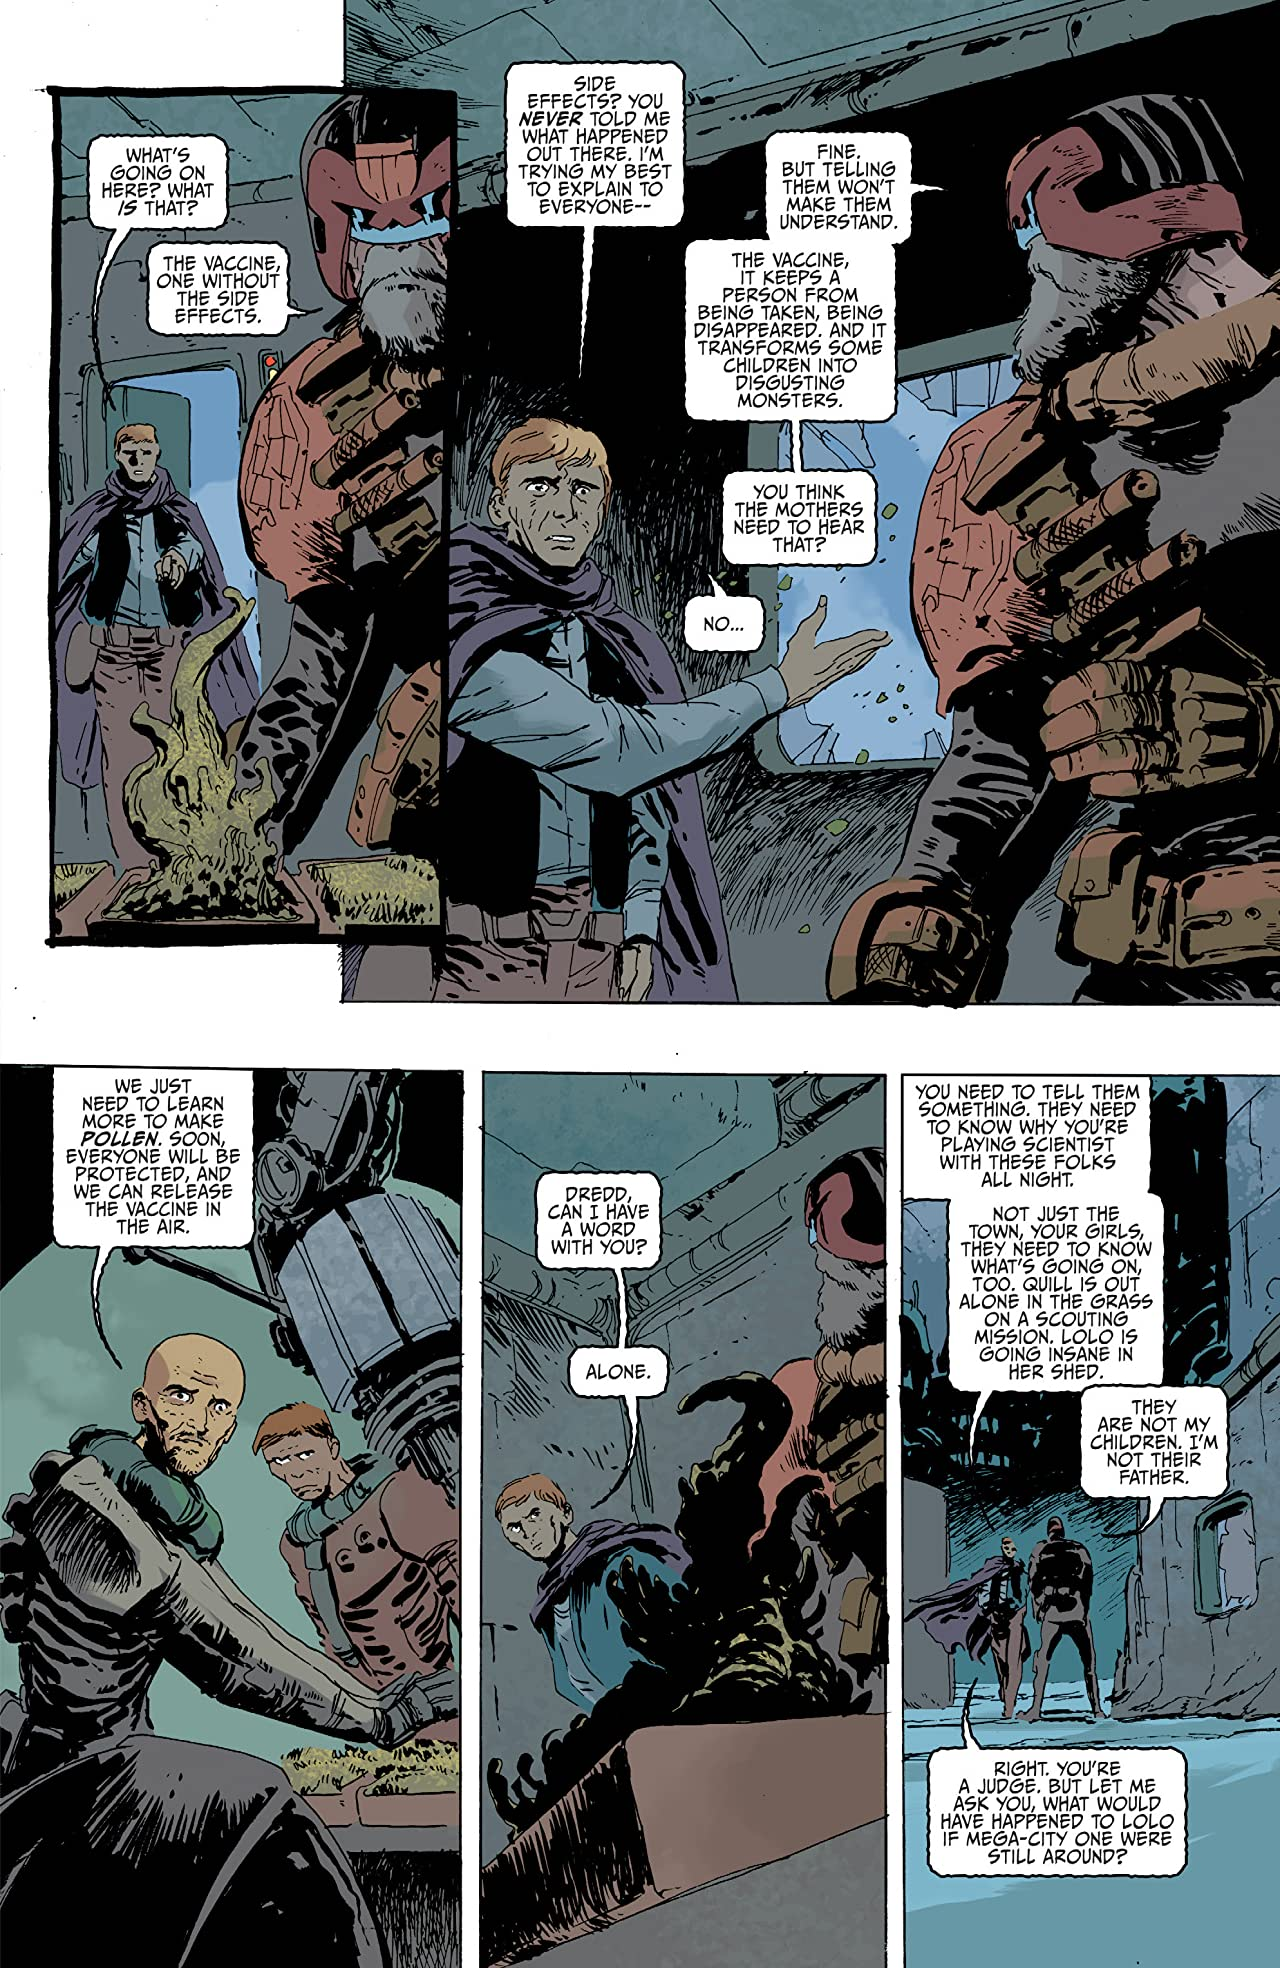 Judge Dredd: Mega-City Zero Vol. 3